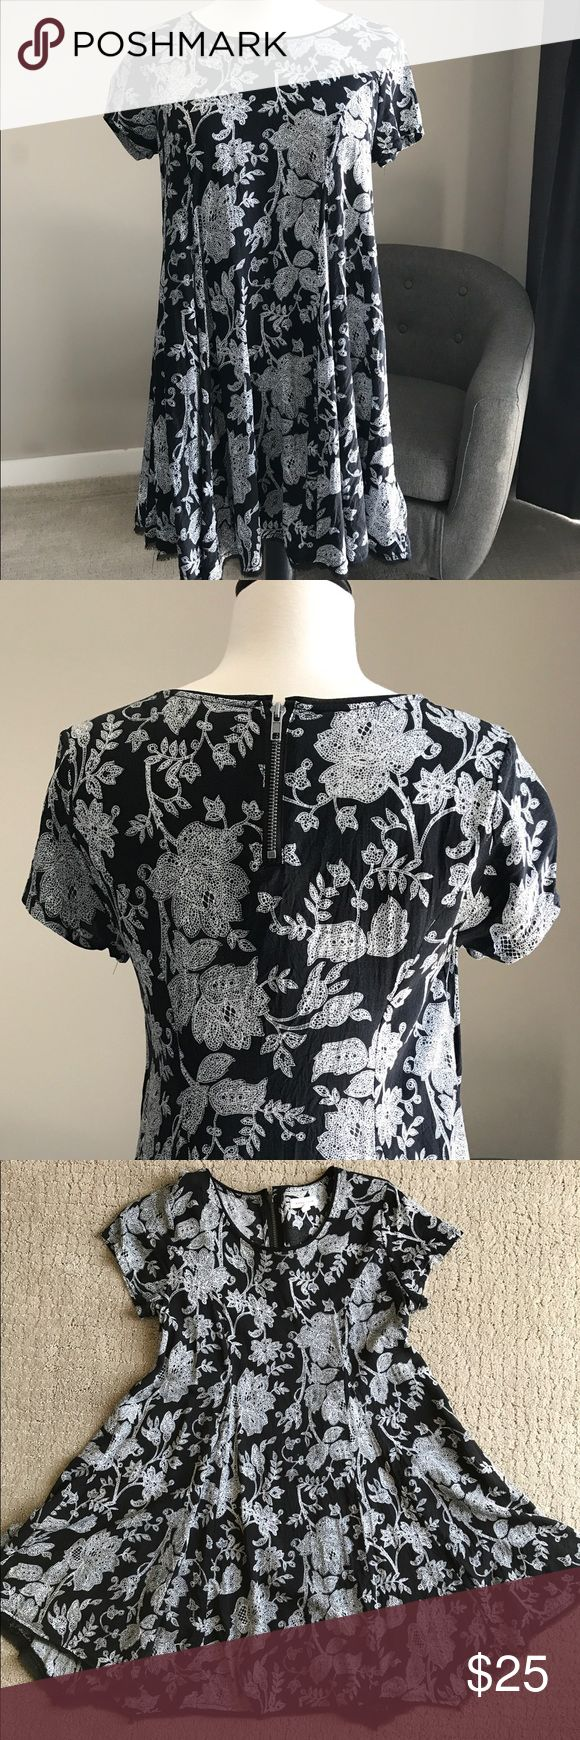 SILENCE & NOISE Flowy Dress from Urban Outfitters Purchased at Urban Outfitters, black & white floral design, GOOD used condition. Last 2 photos for modeling purposes only - pattern for sale can be seen in first 4 photos. Sorry, no trades. silence + noise Dresses